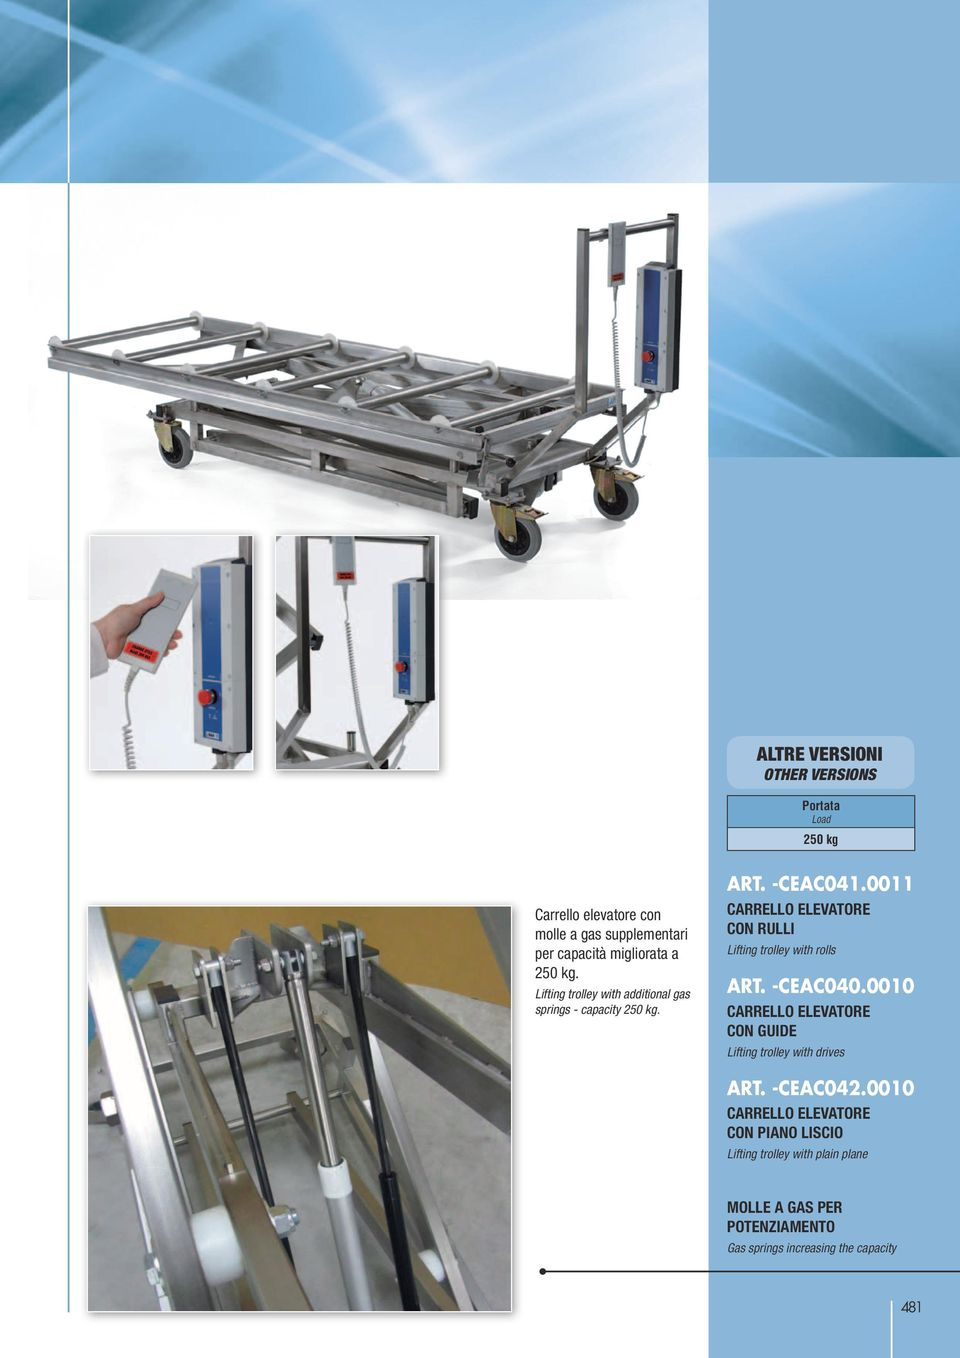 0011 Lifting trolley with rolls Art. -CEAC040.0010 Lifting trolley with drives Art.